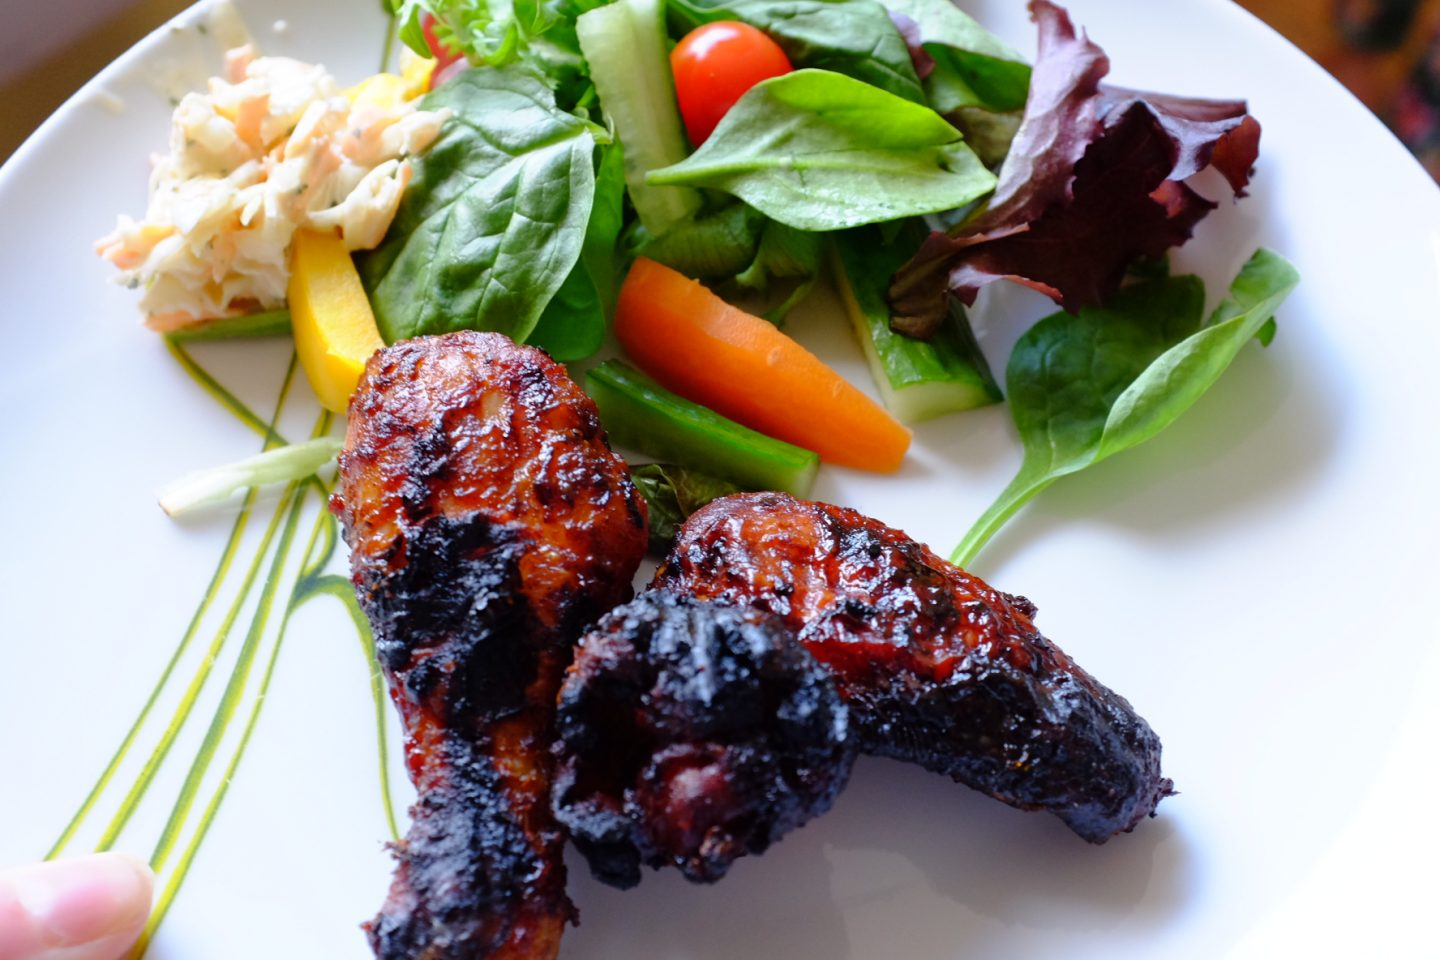 BBQ chicken and salad on a plate from Jacks supermarket